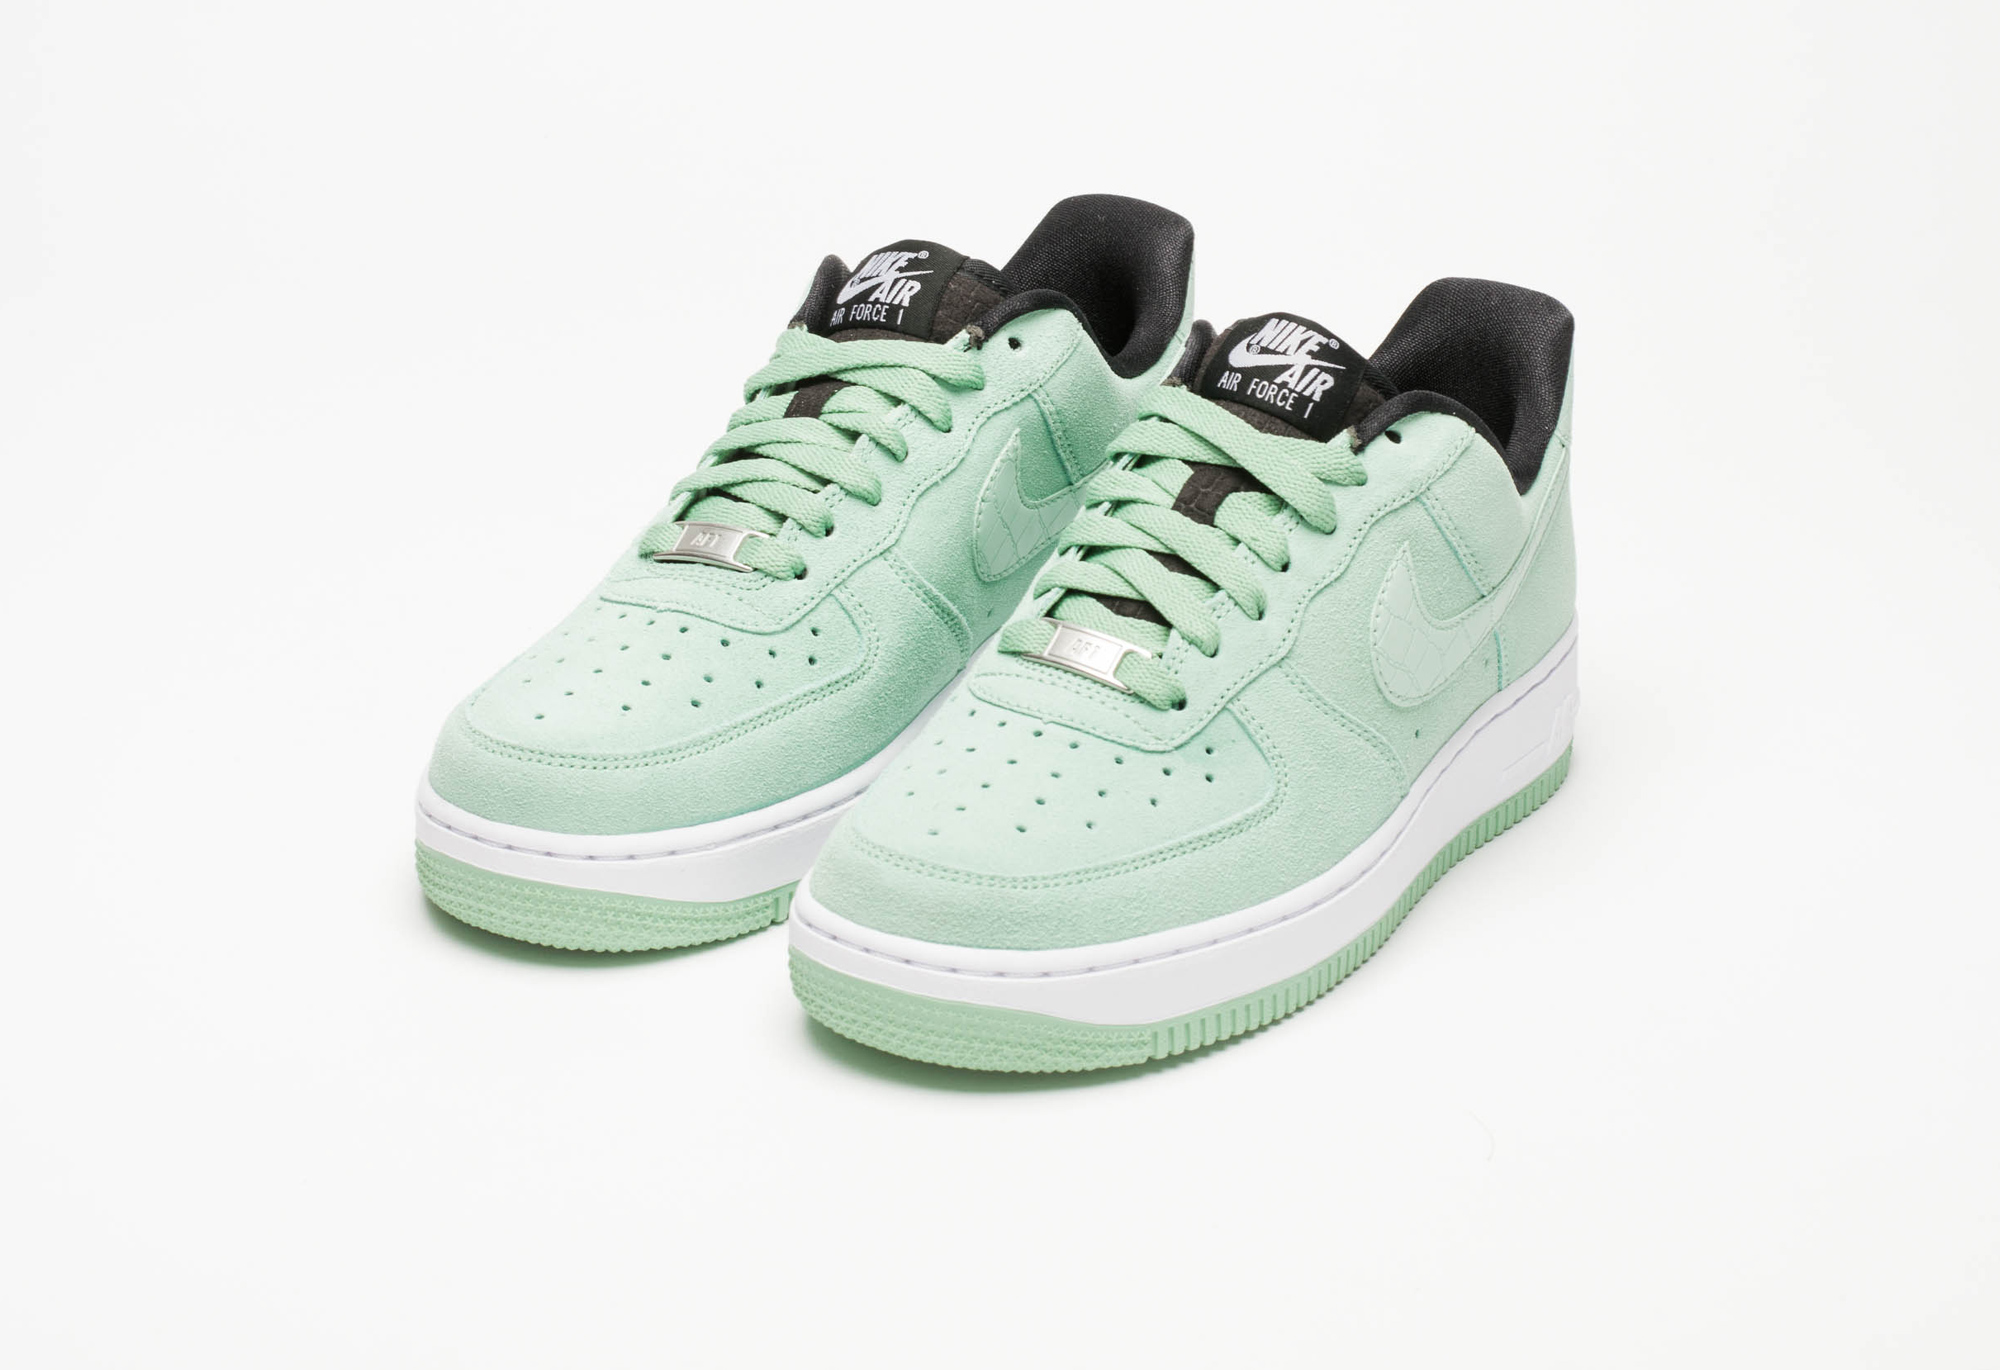 nike air force 1 wmns enamel green sneakers addict. Black Bedroom Furniture Sets. Home Design Ideas